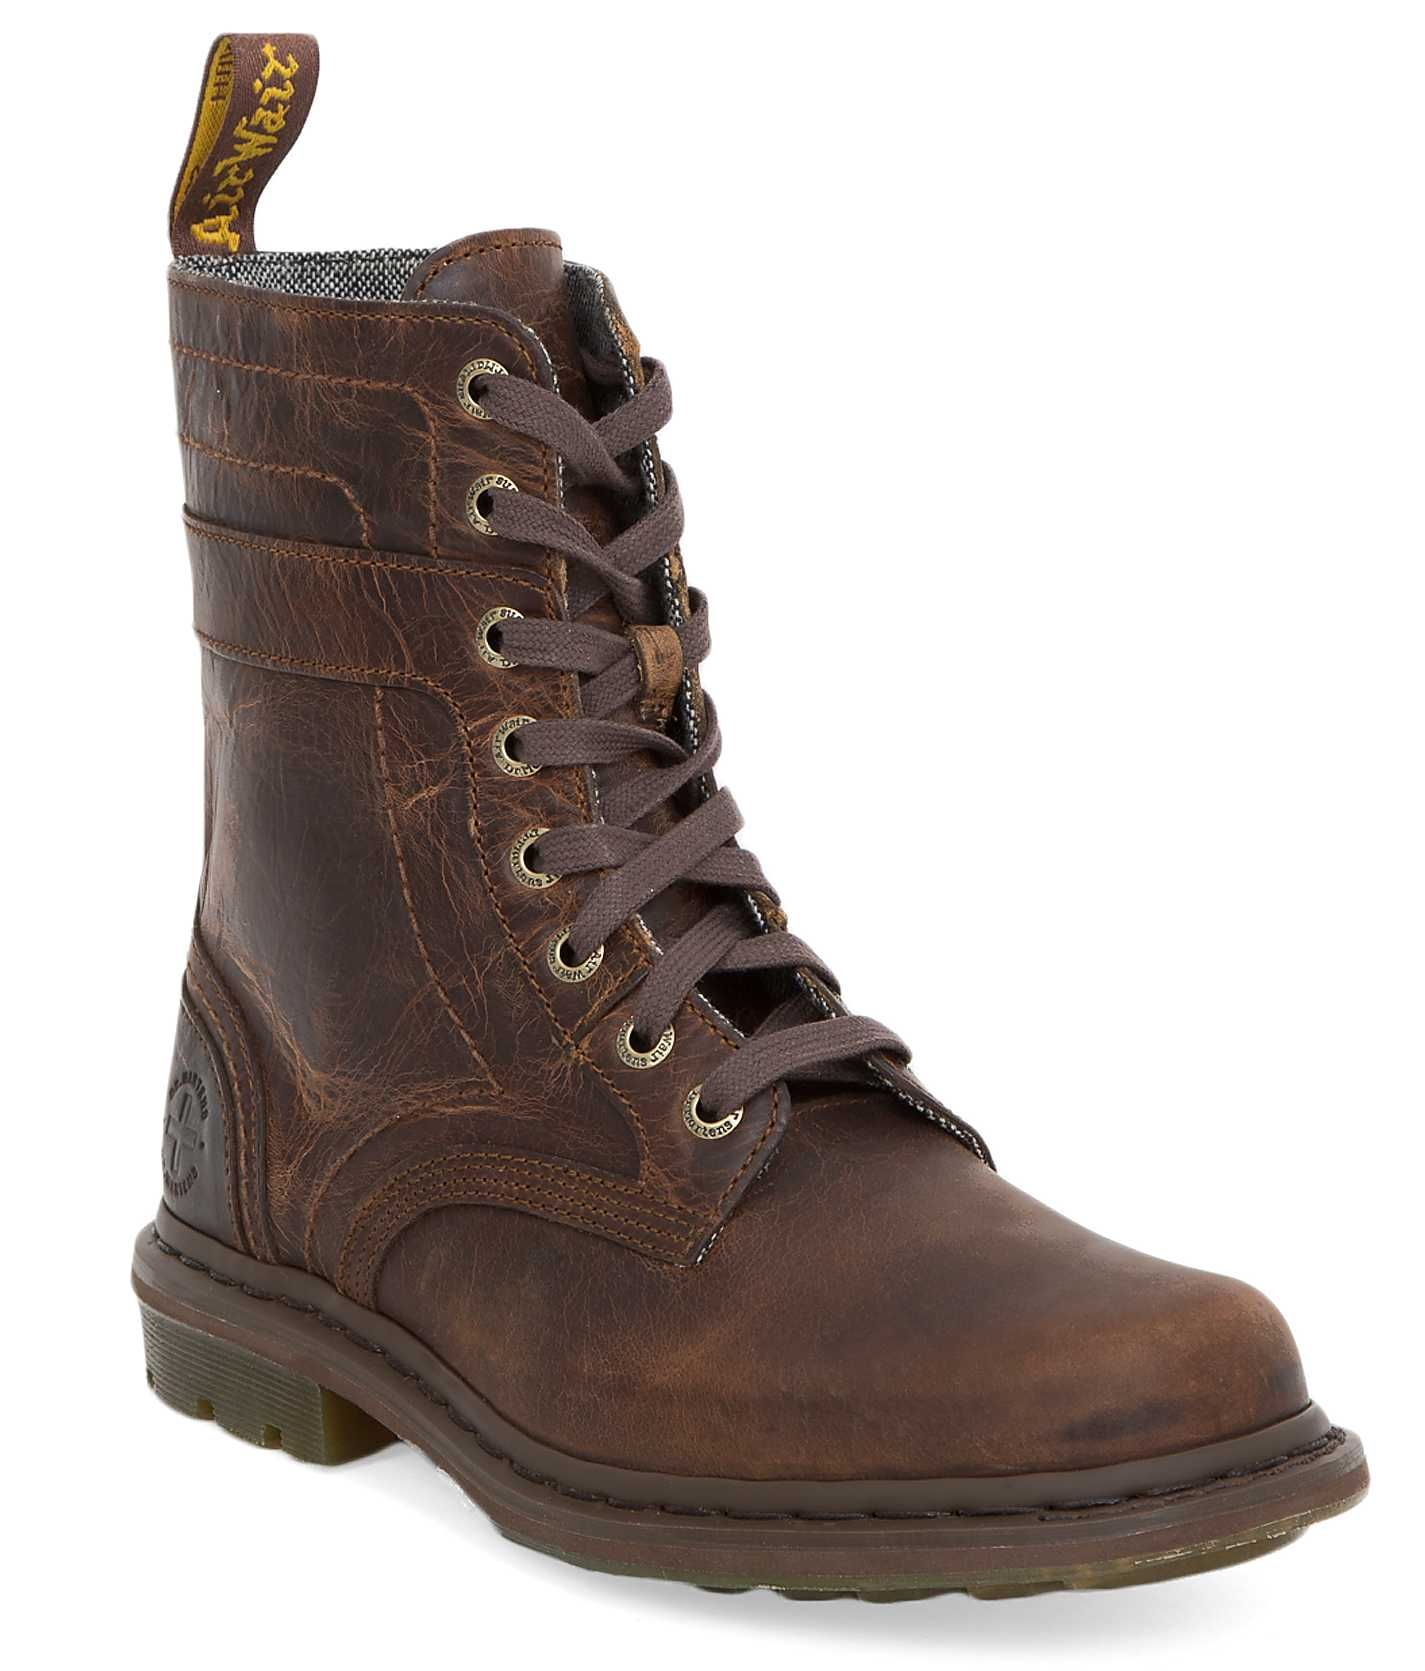 Dr. Martens Slater Boot - Men's Shoes in Tan Greenland